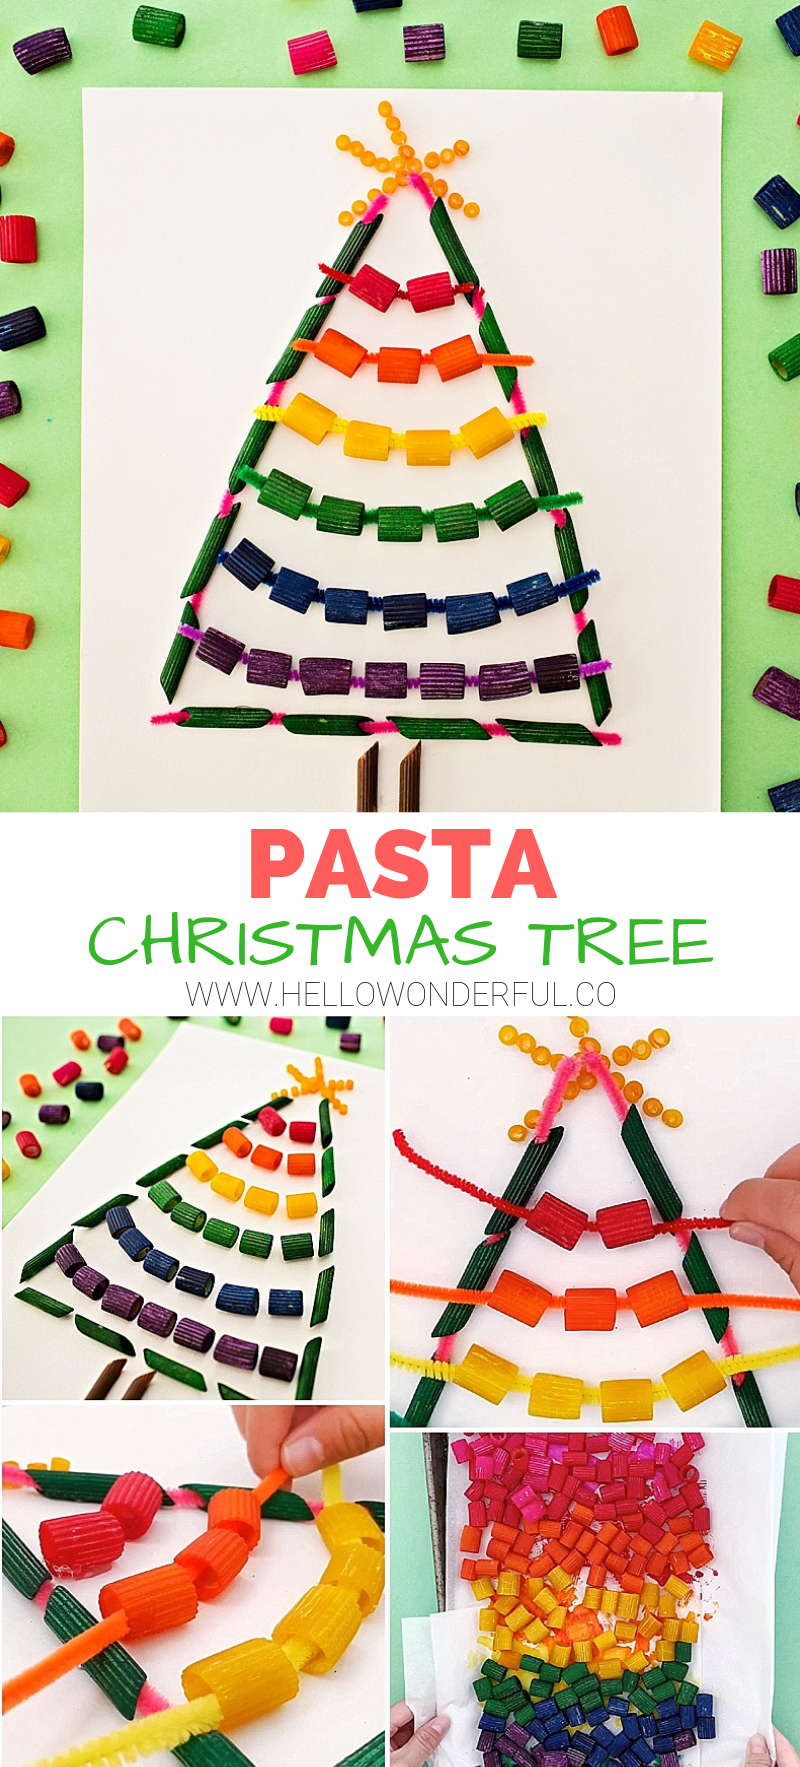 Rainbow Pasta Christmas Tree Craft. Colorful #christmastree #kidscraft. The threading is fun for #finemotorskills #kidsart #christmascrafts #christmasdiy #christmasart #pastacraft